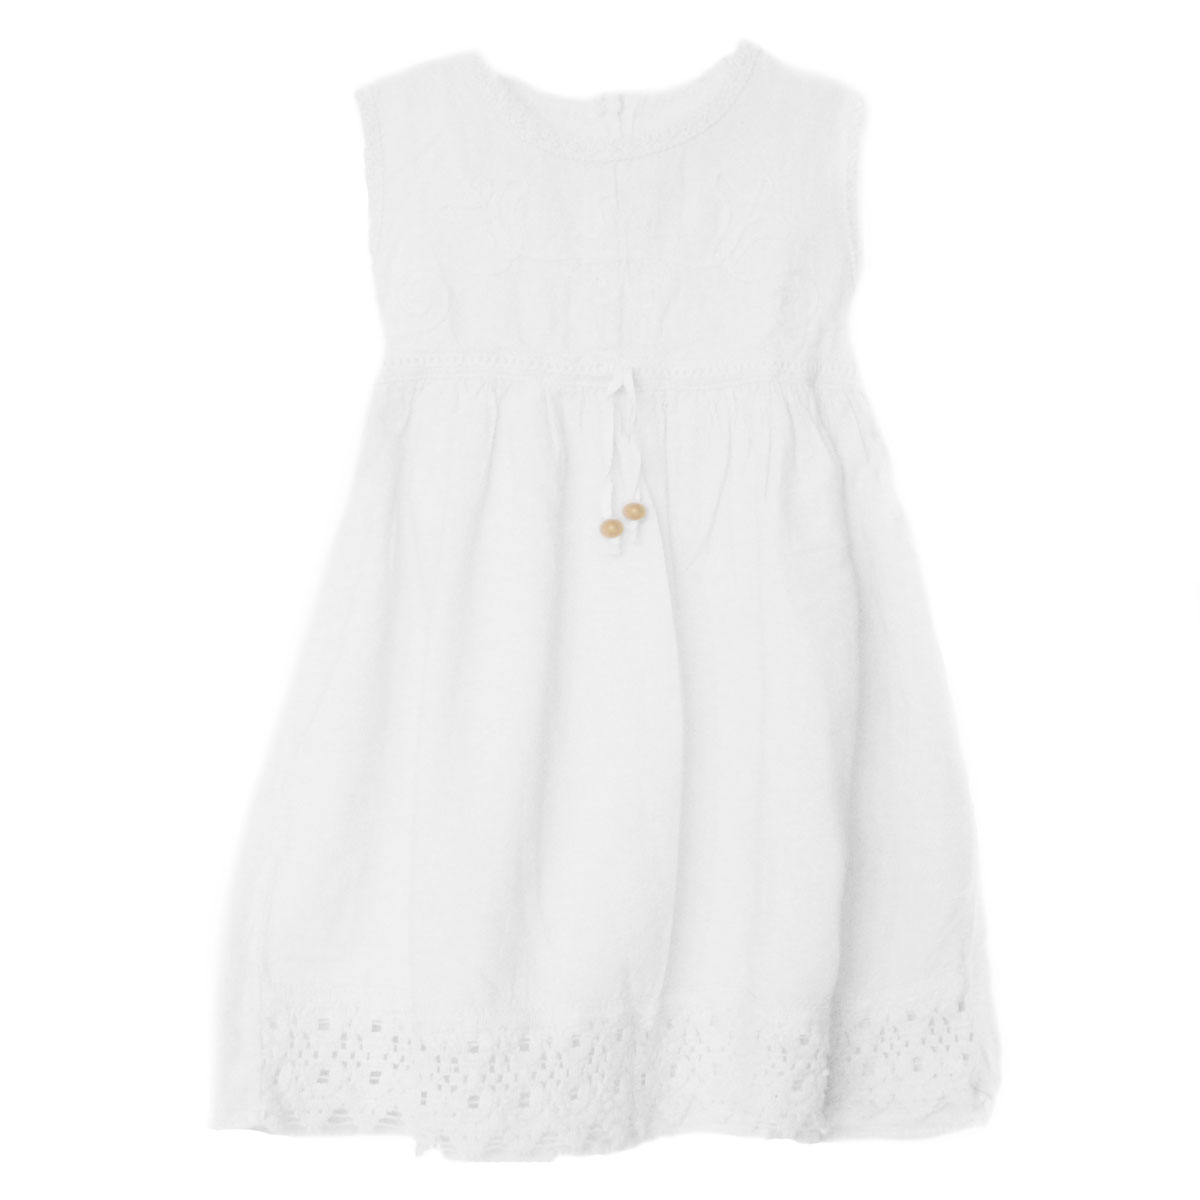 Inka-Products-Robe sans manches fille-En Coton Broderie Péruvienne